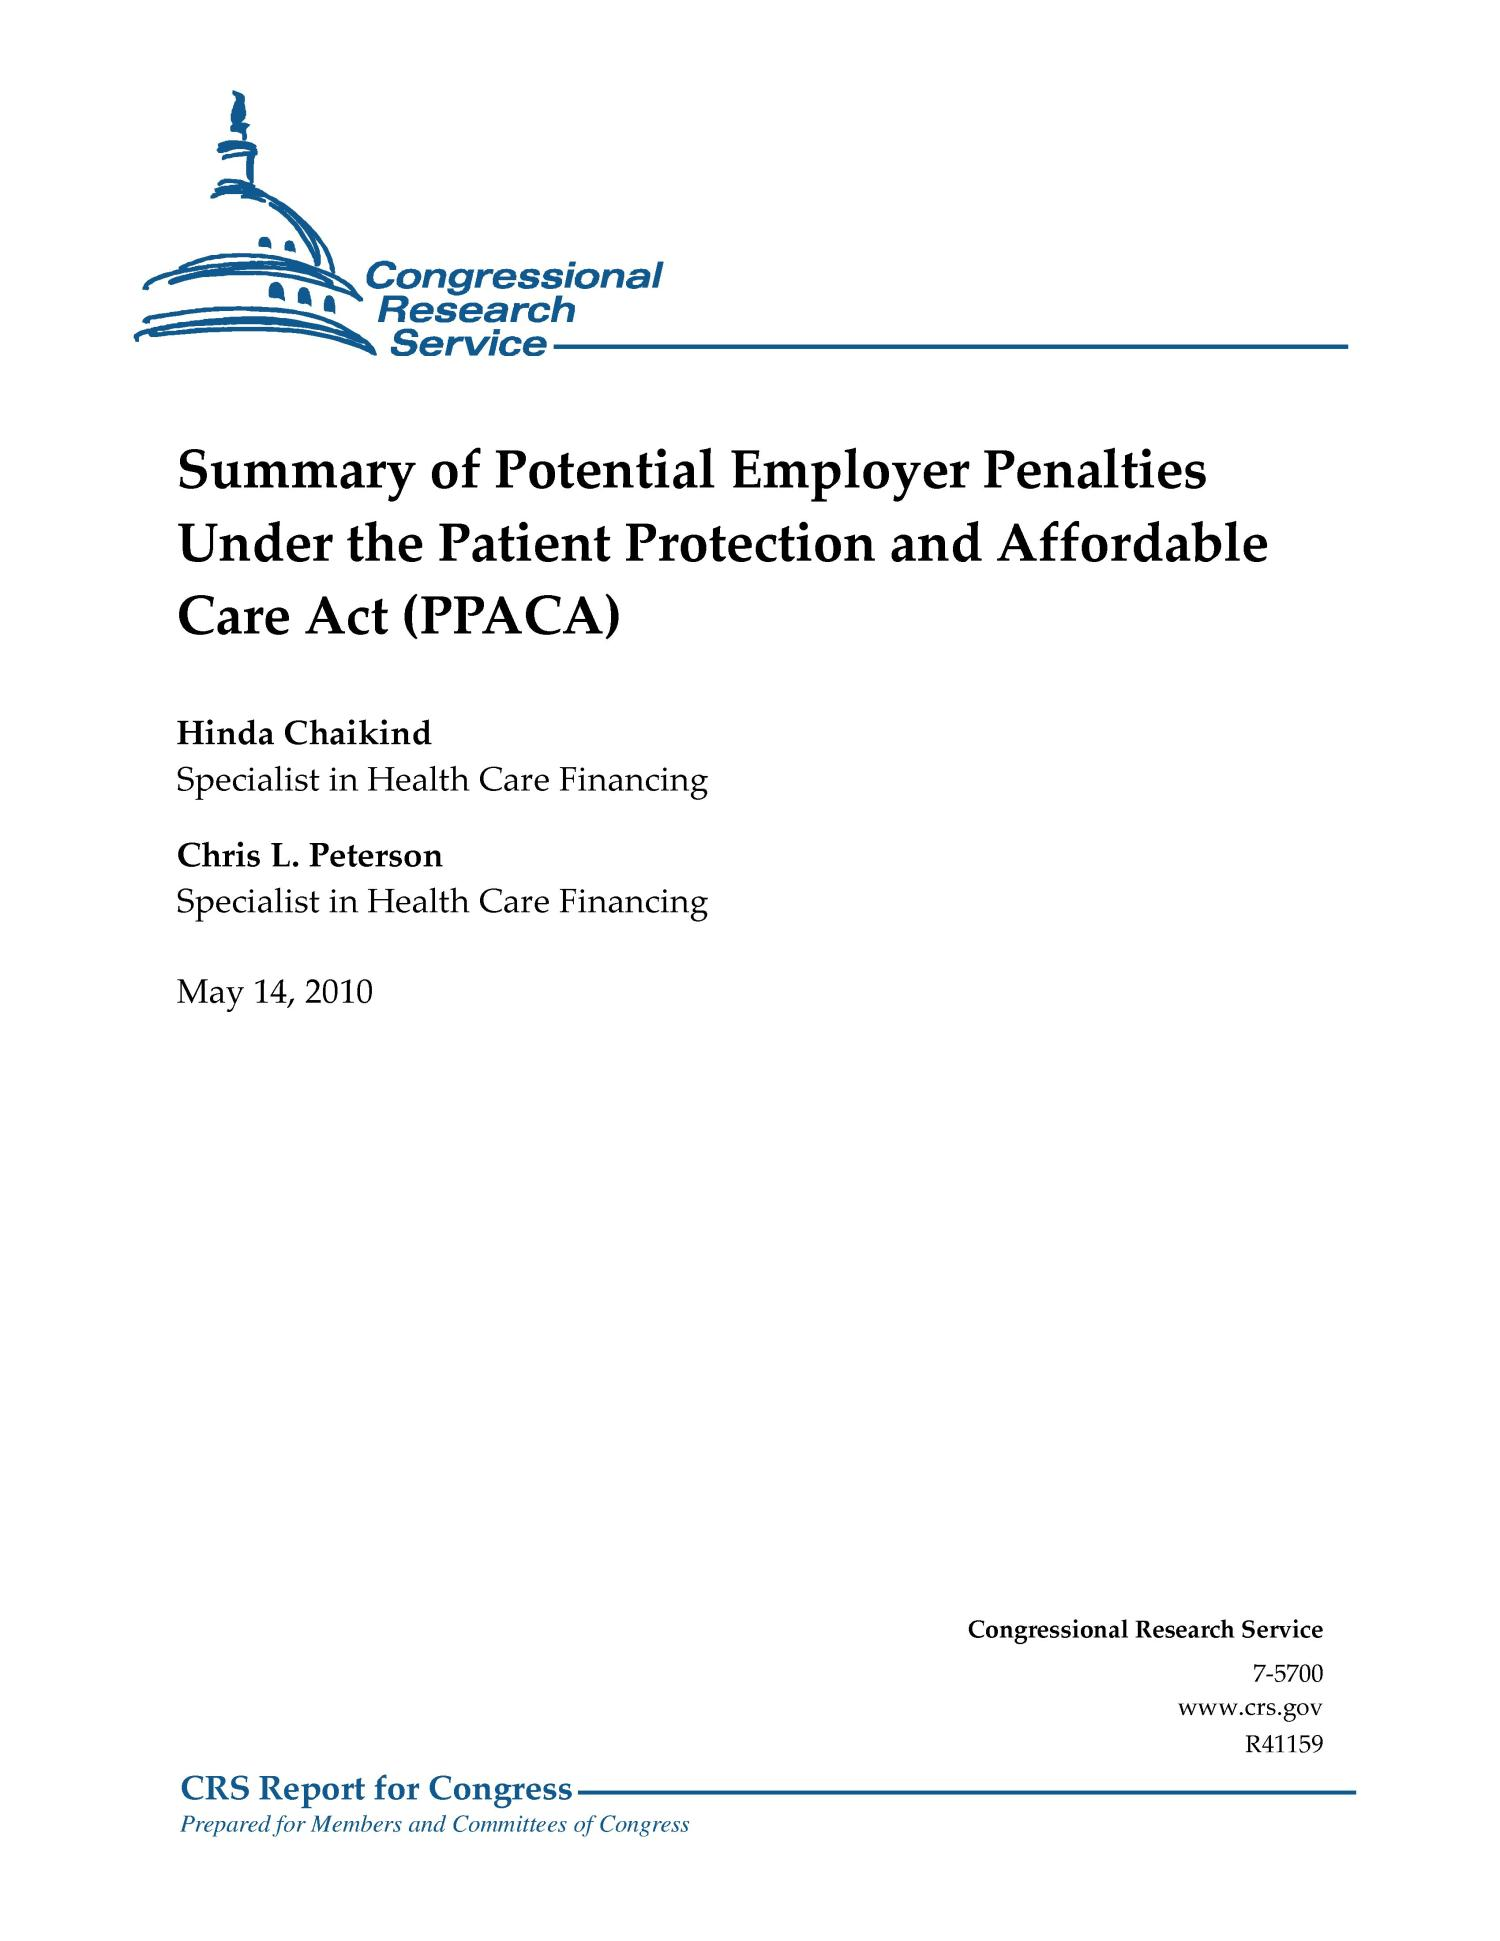 Summary of Potential Employer Penalties Under the Patient Protection and Affordable Care Act (PPACA)                                                                                                      [Sequence #]: 1 of 10